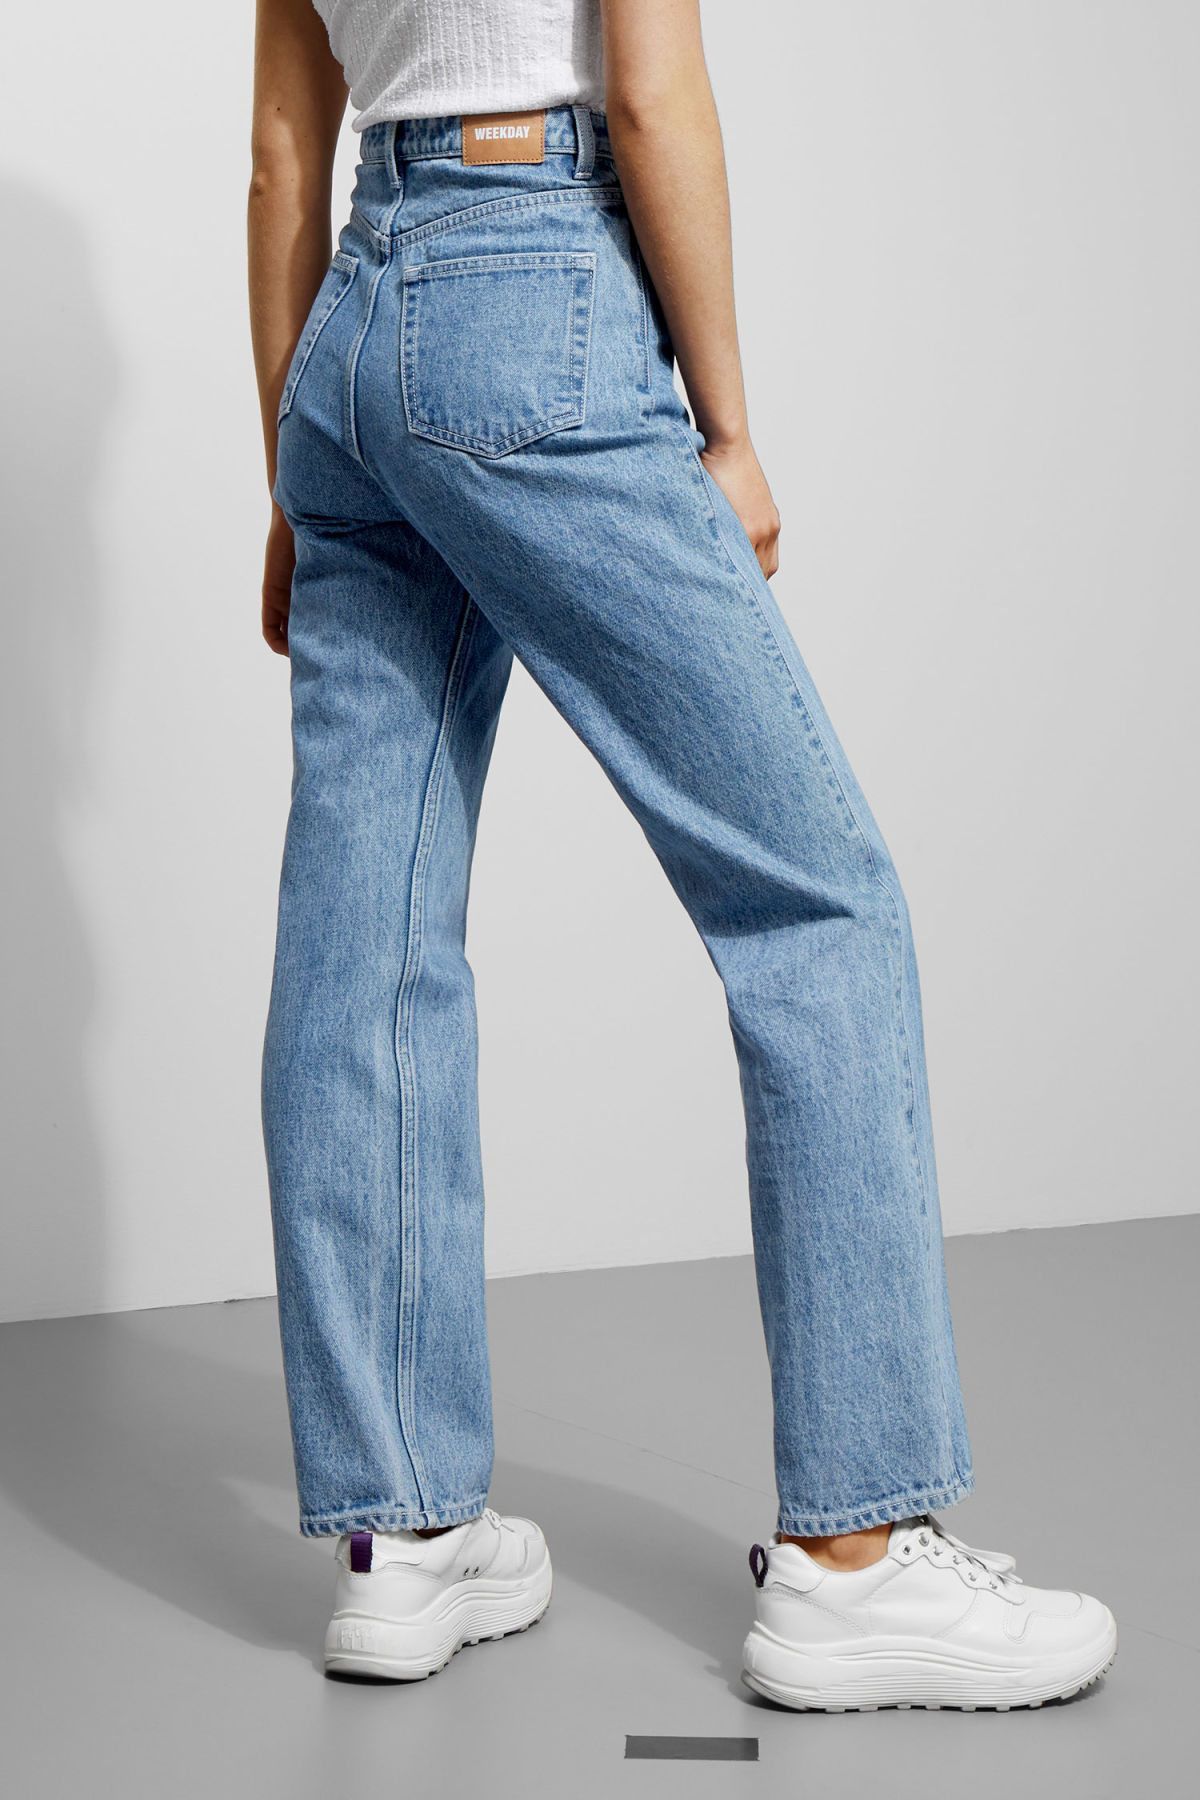 authorized site nice cheap new high quality Row Sky Blue Jeans - Blue - Jeans   Online clothing in 2019 ...